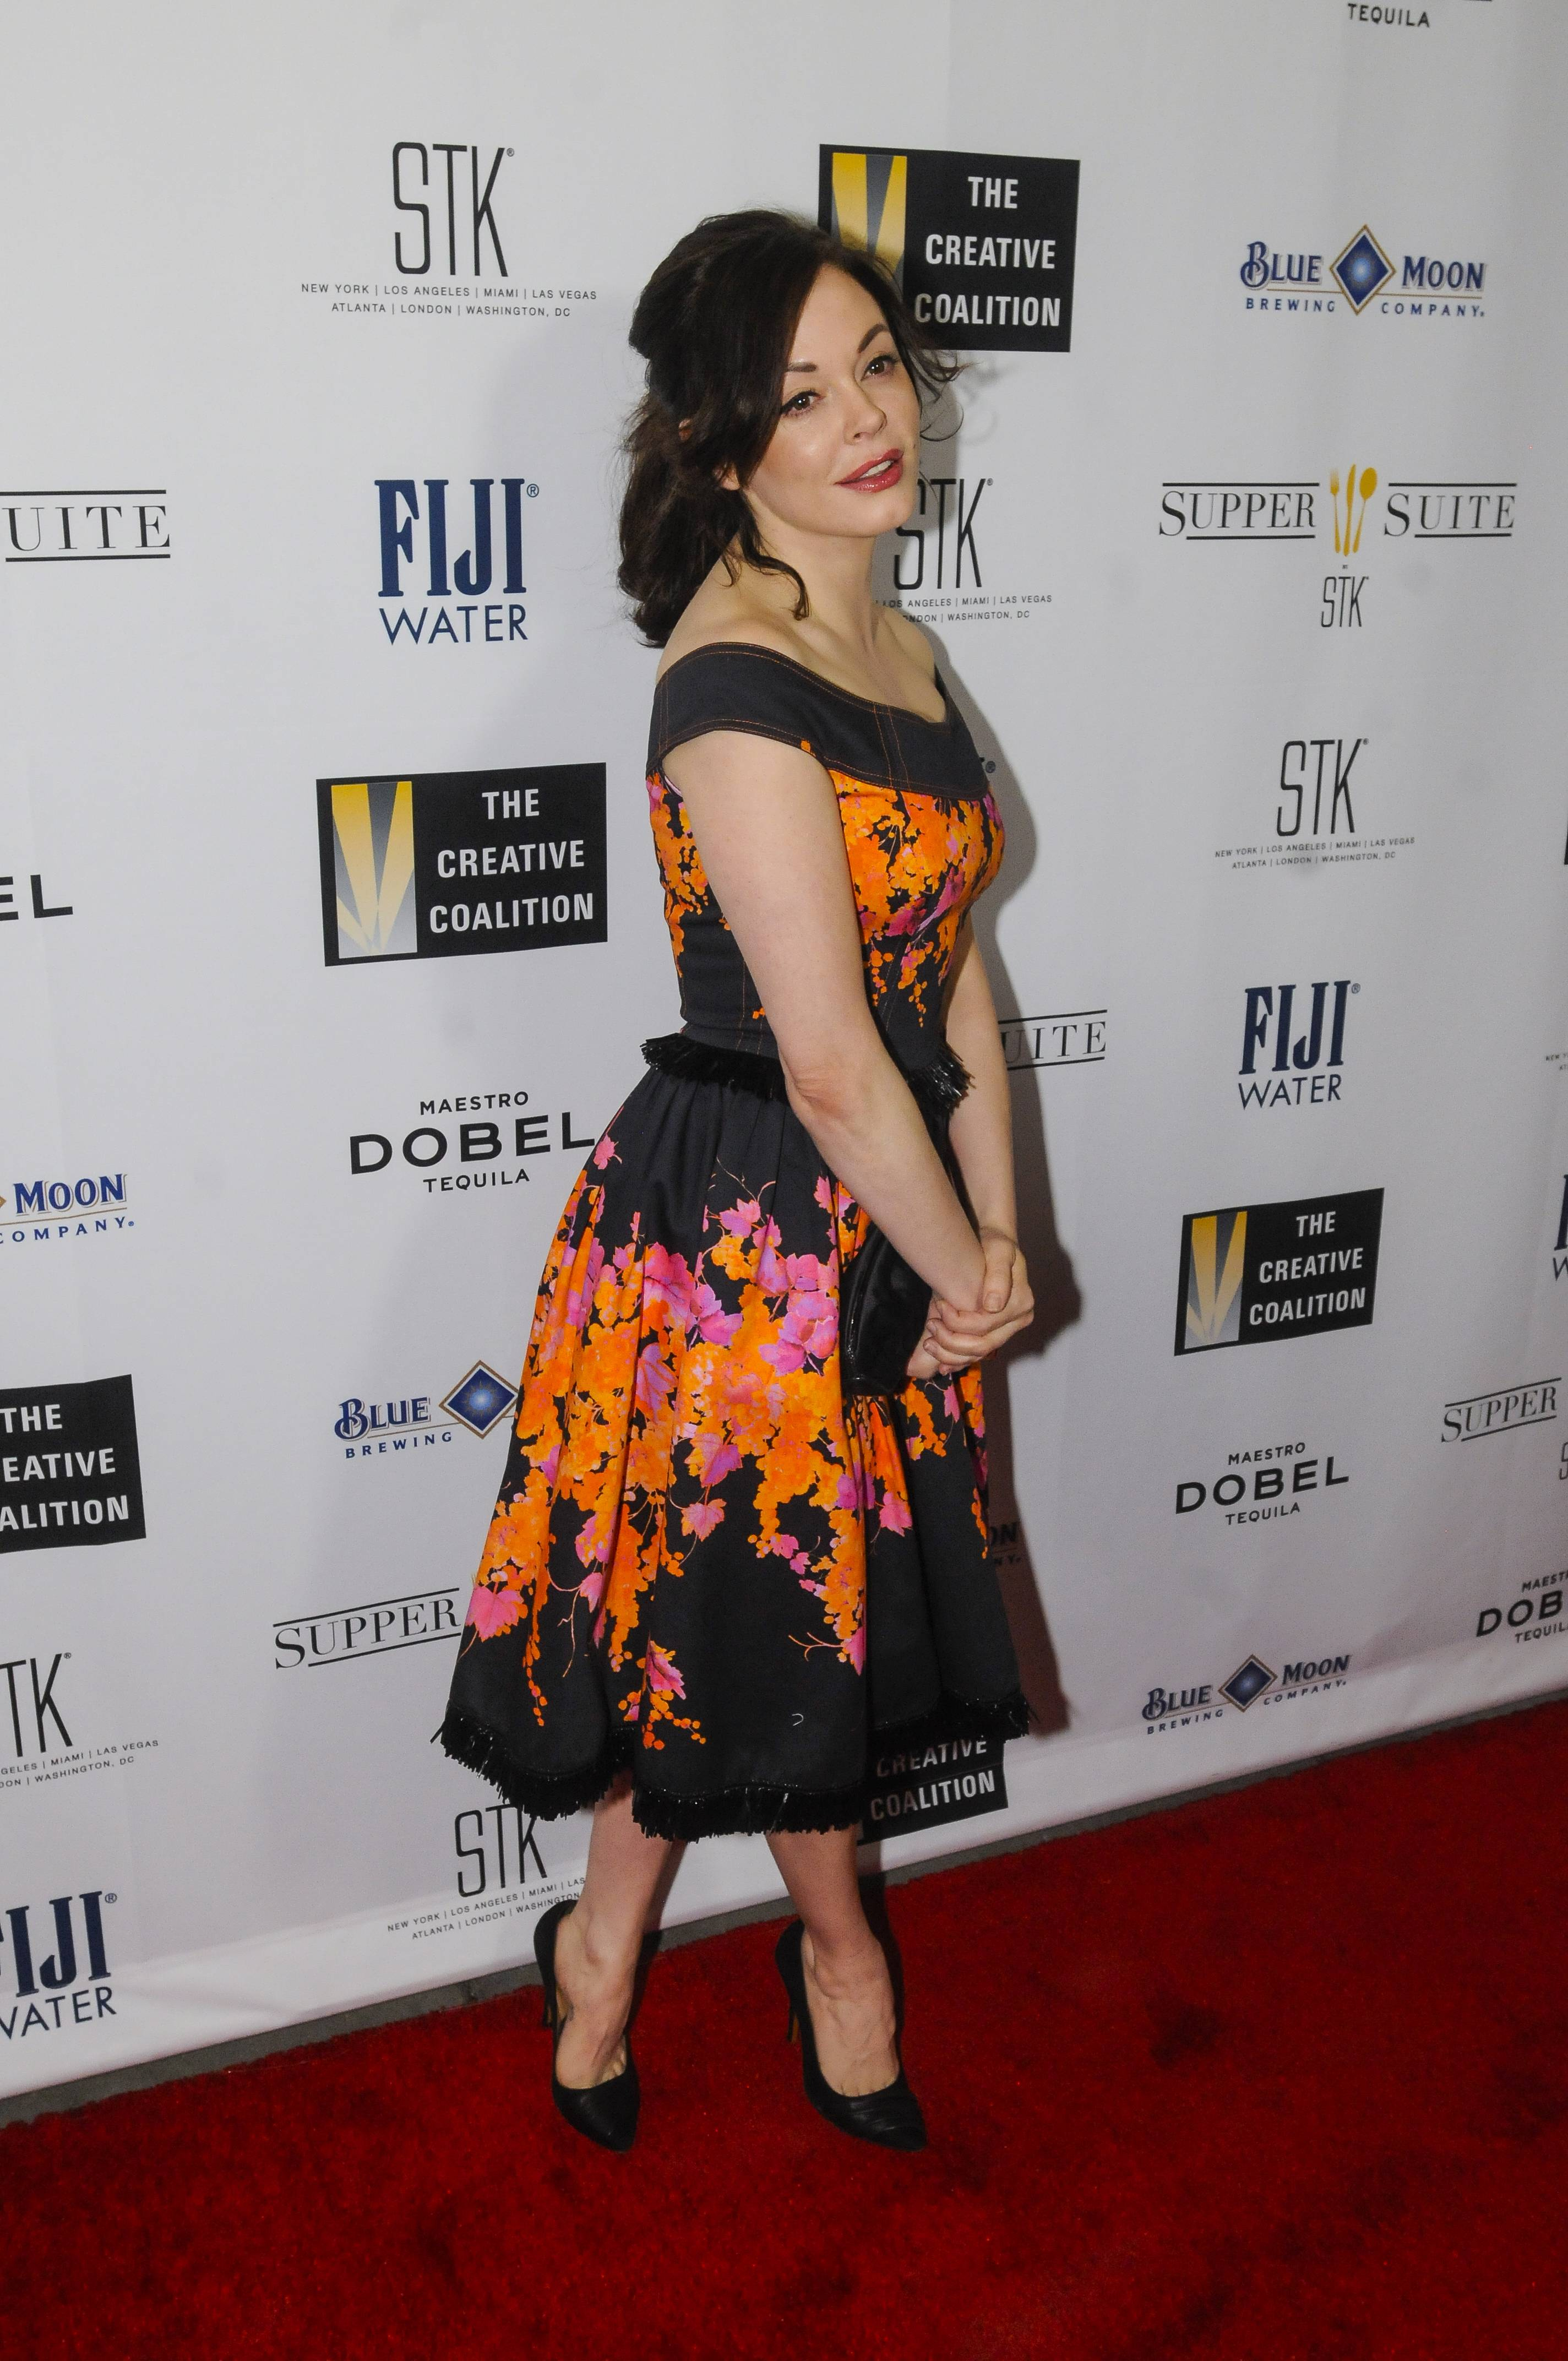 Rose McGowan Supper Suite by STK honors The Creative Coalitions Arts in America Benefit Gala